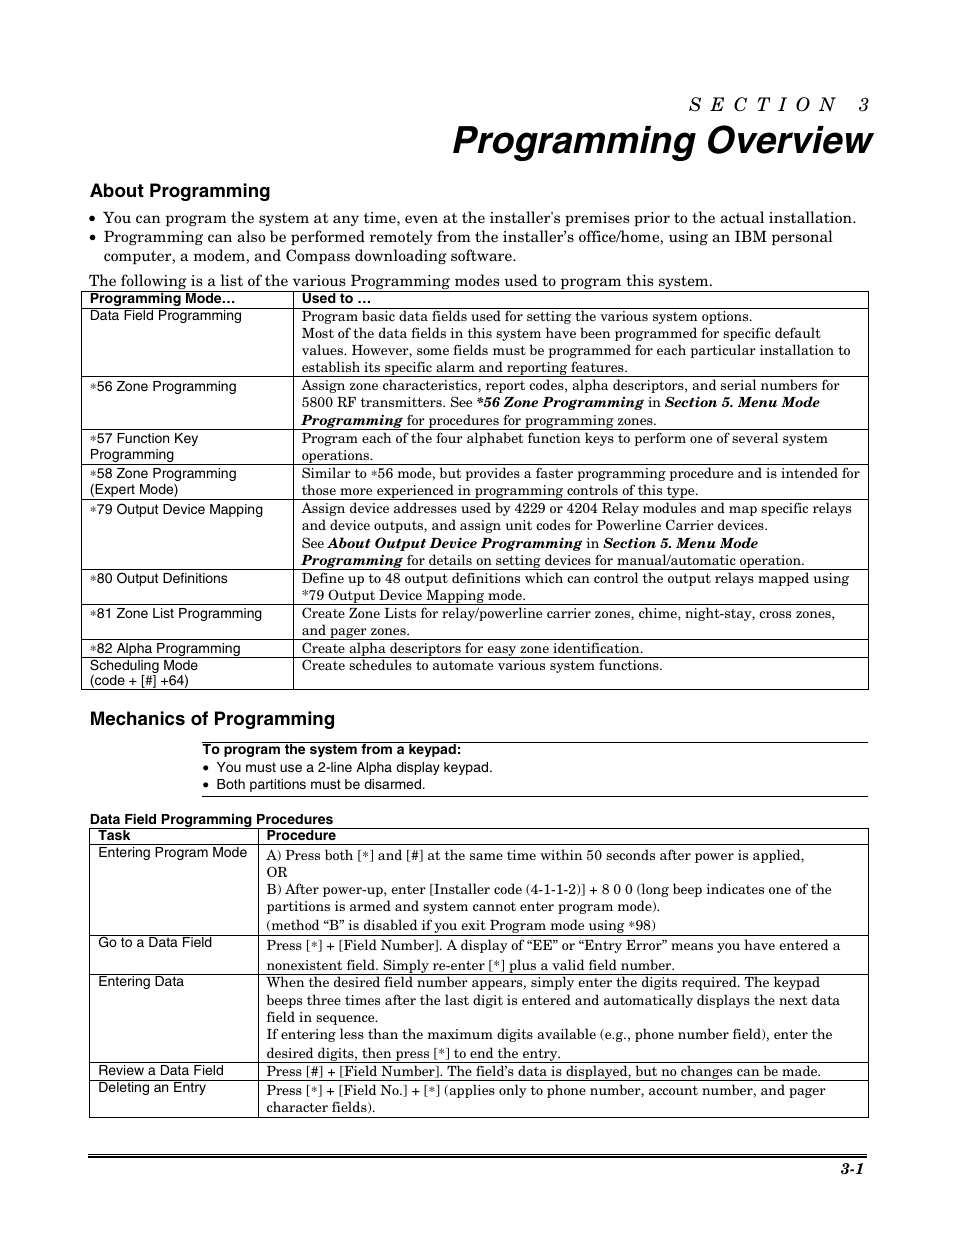 Programming overview, About programming, Mechanics of programming | Honeywell  VISTA-20P User Manual